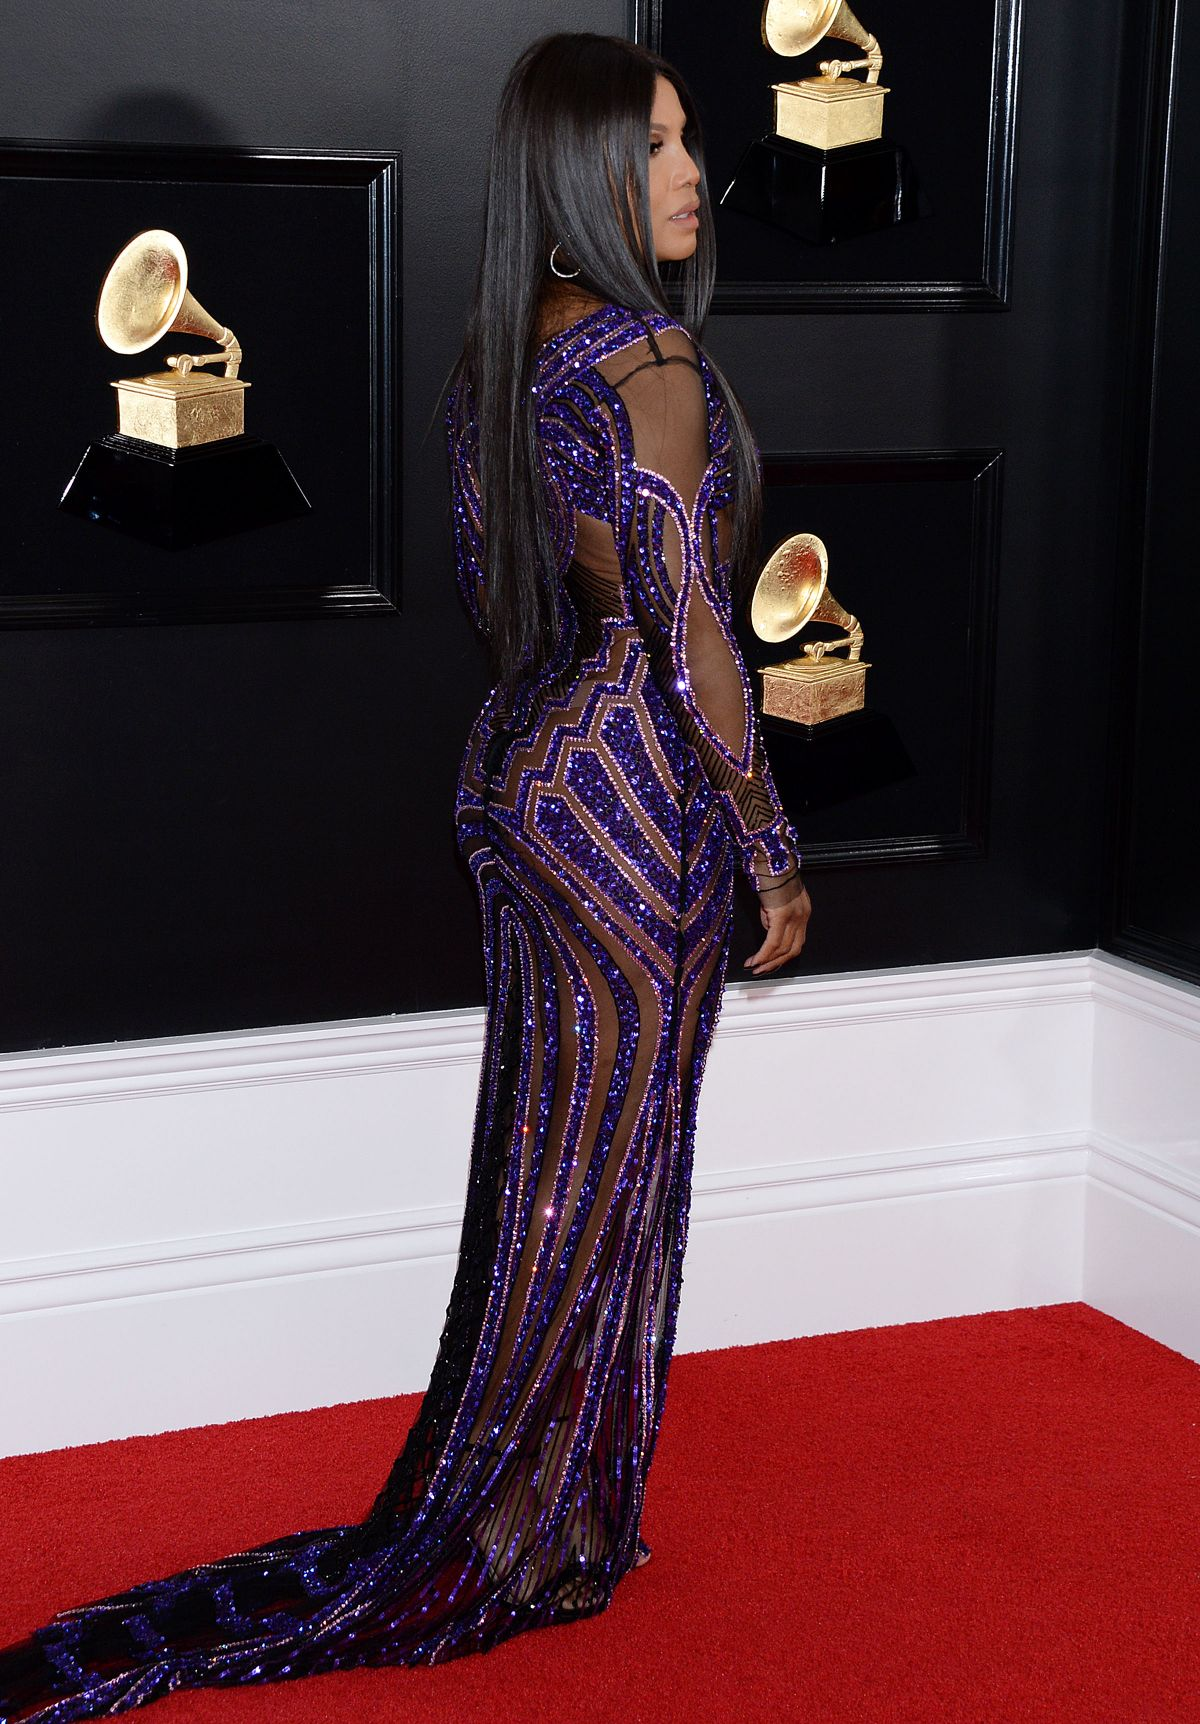 TONI BRAXTON at 61st Annual Grammy Awards in Los Angeles